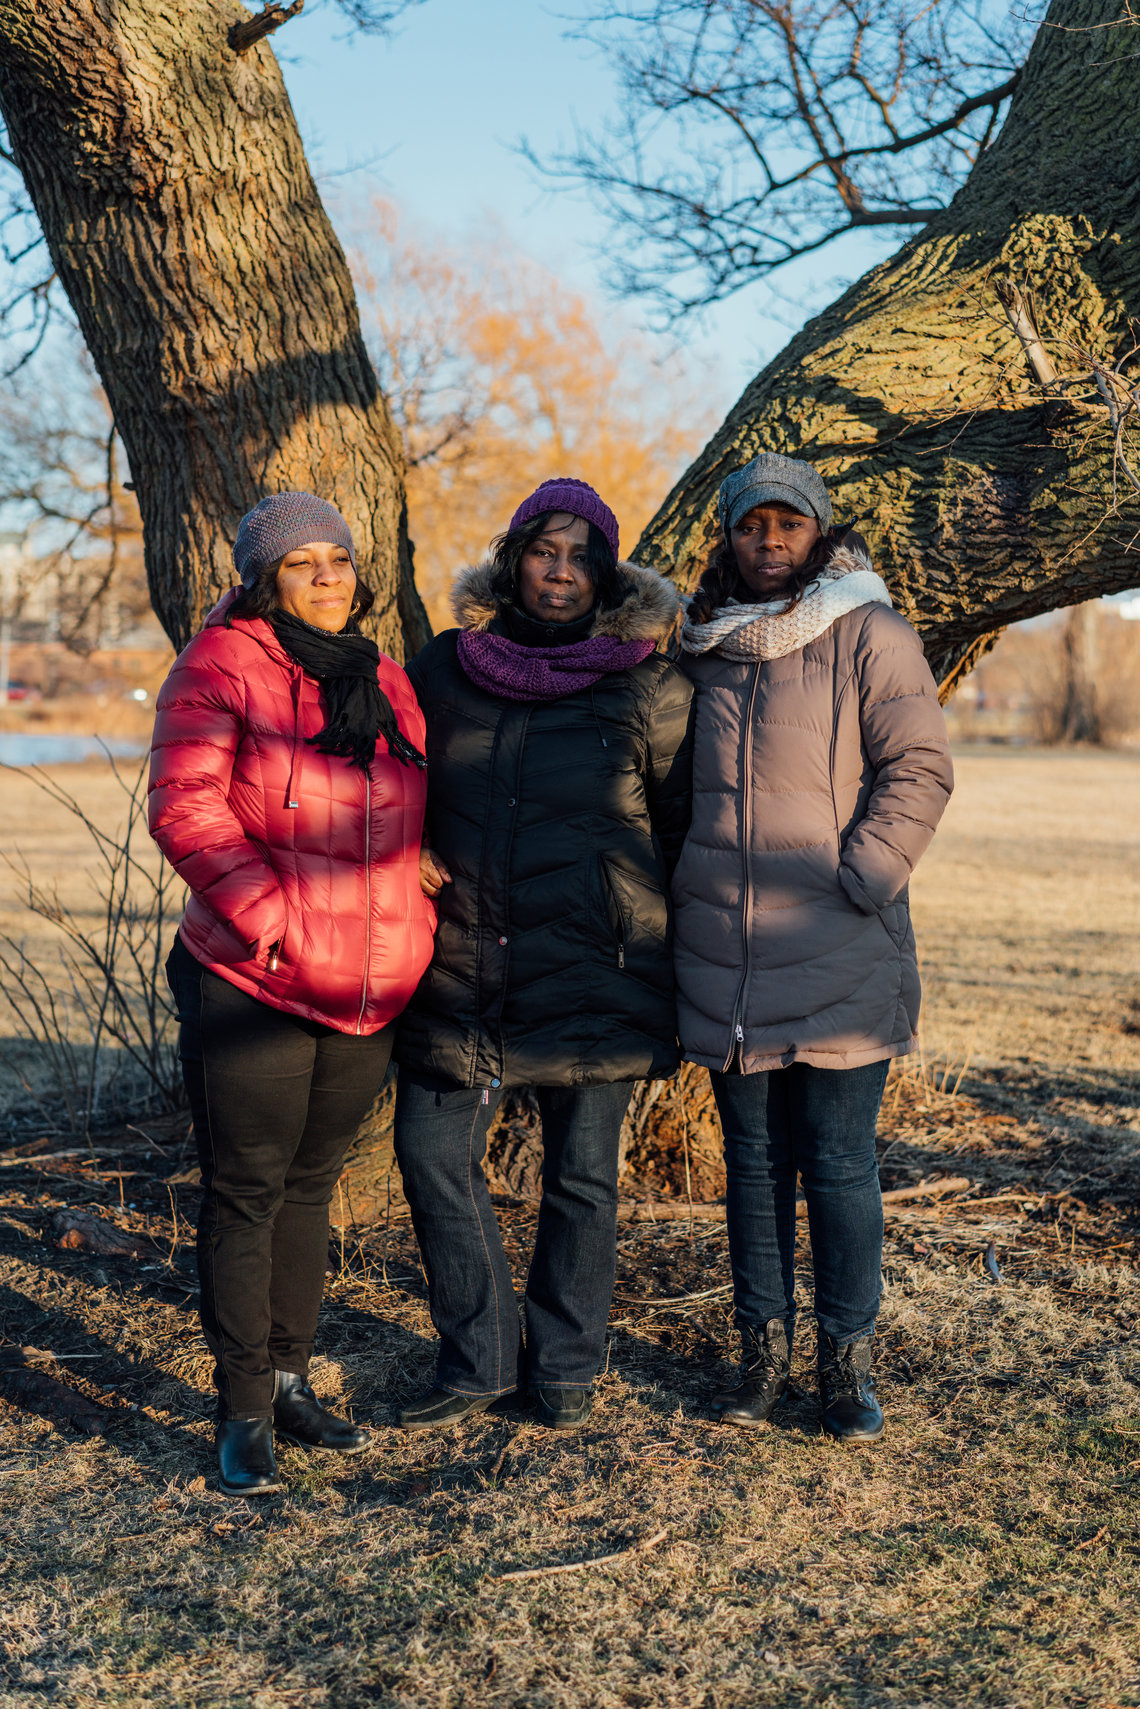 Simmons' sisters in January. From left, Tiffany Ryan, Debra Simmons, and Renesa Peterson stand at the tree in Washington Park in Chicago where they scattered their parents' and brother's ashes.